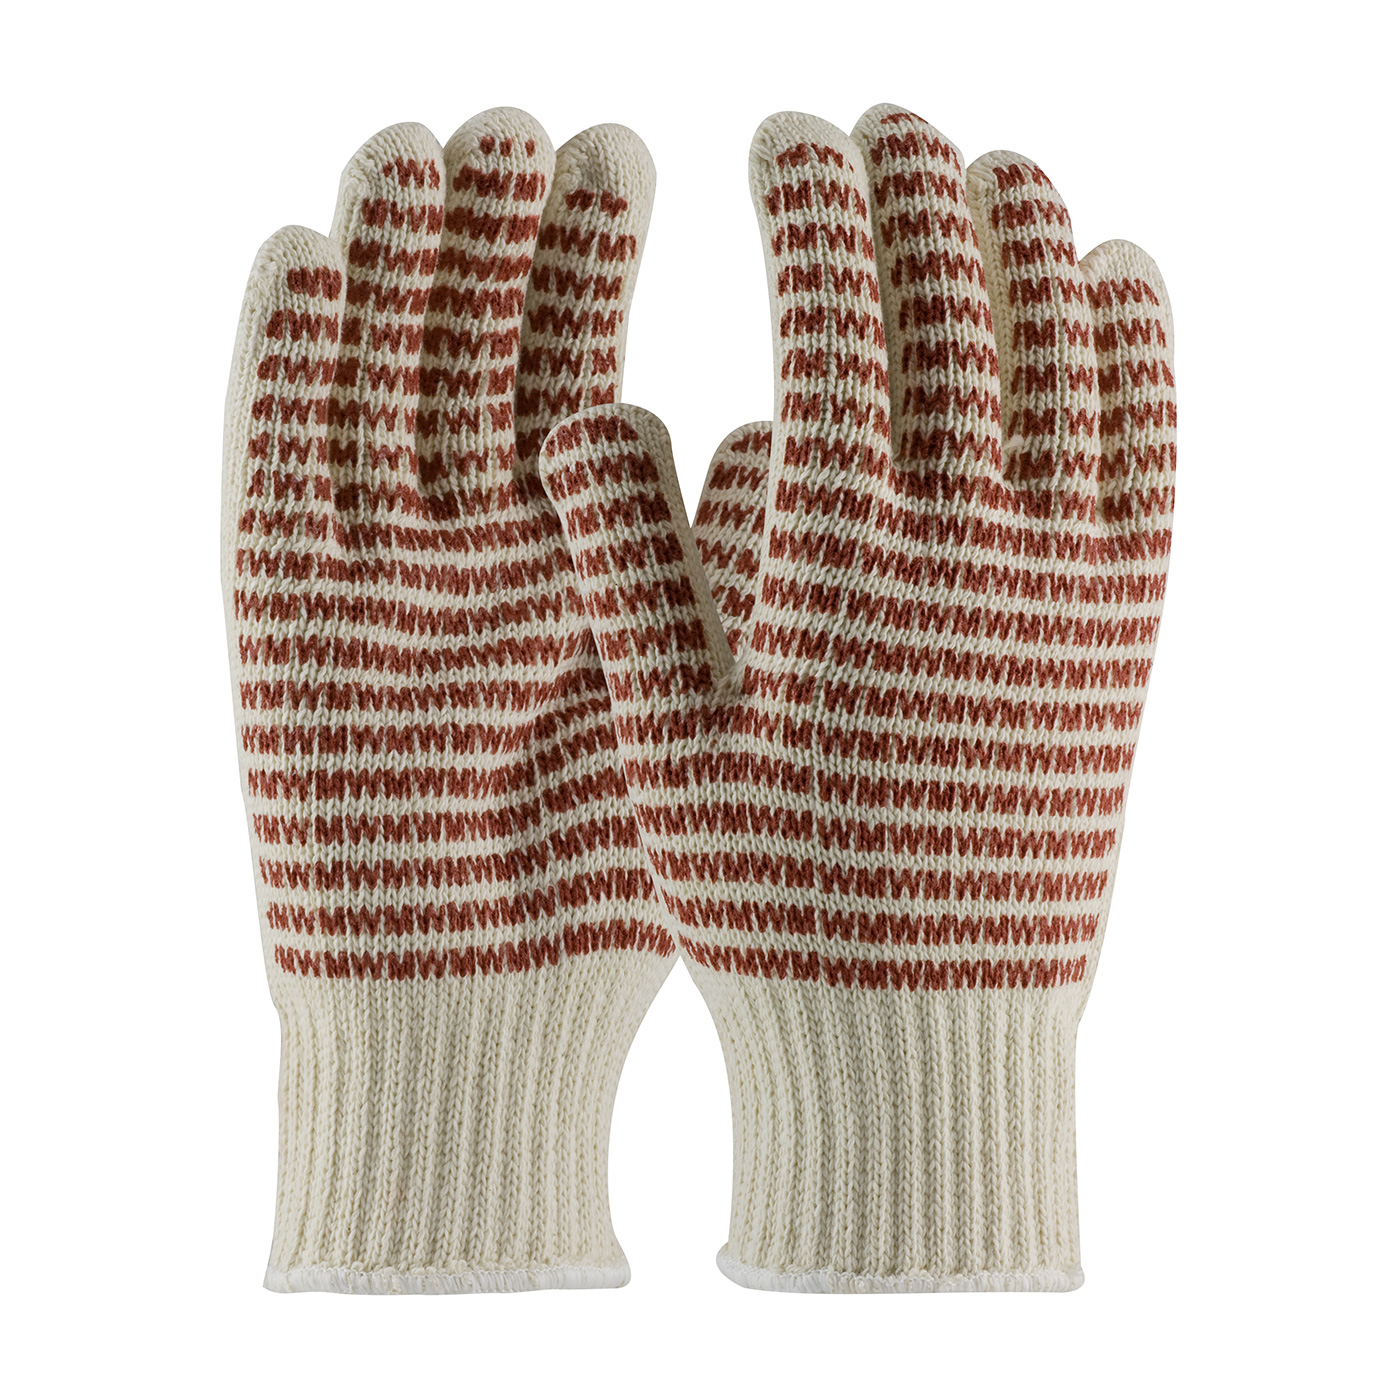 PIP®  Seamless Knit Cotton / Polyester Glove with Double-sided EverGrip™ Nitrile Coating #38-720